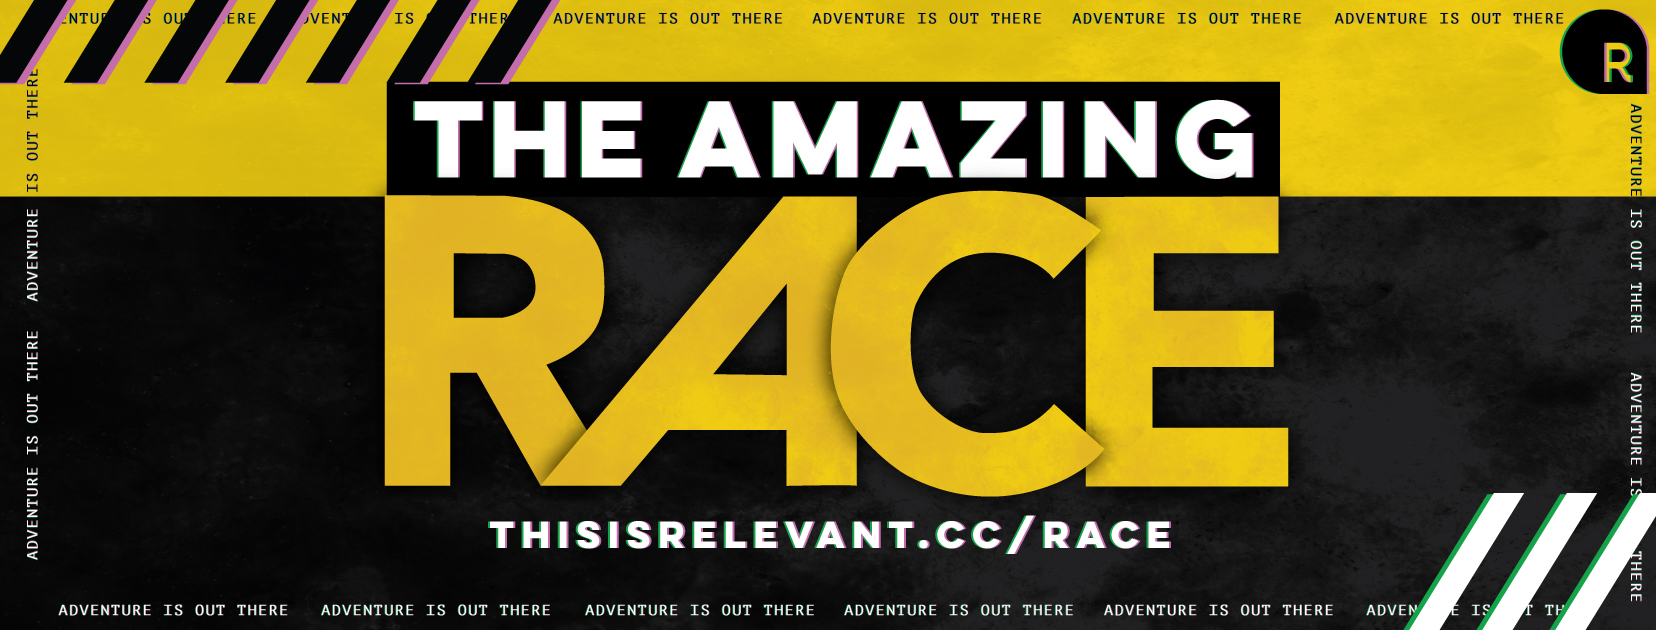 Amazing-race_FB-page-cover.jpg